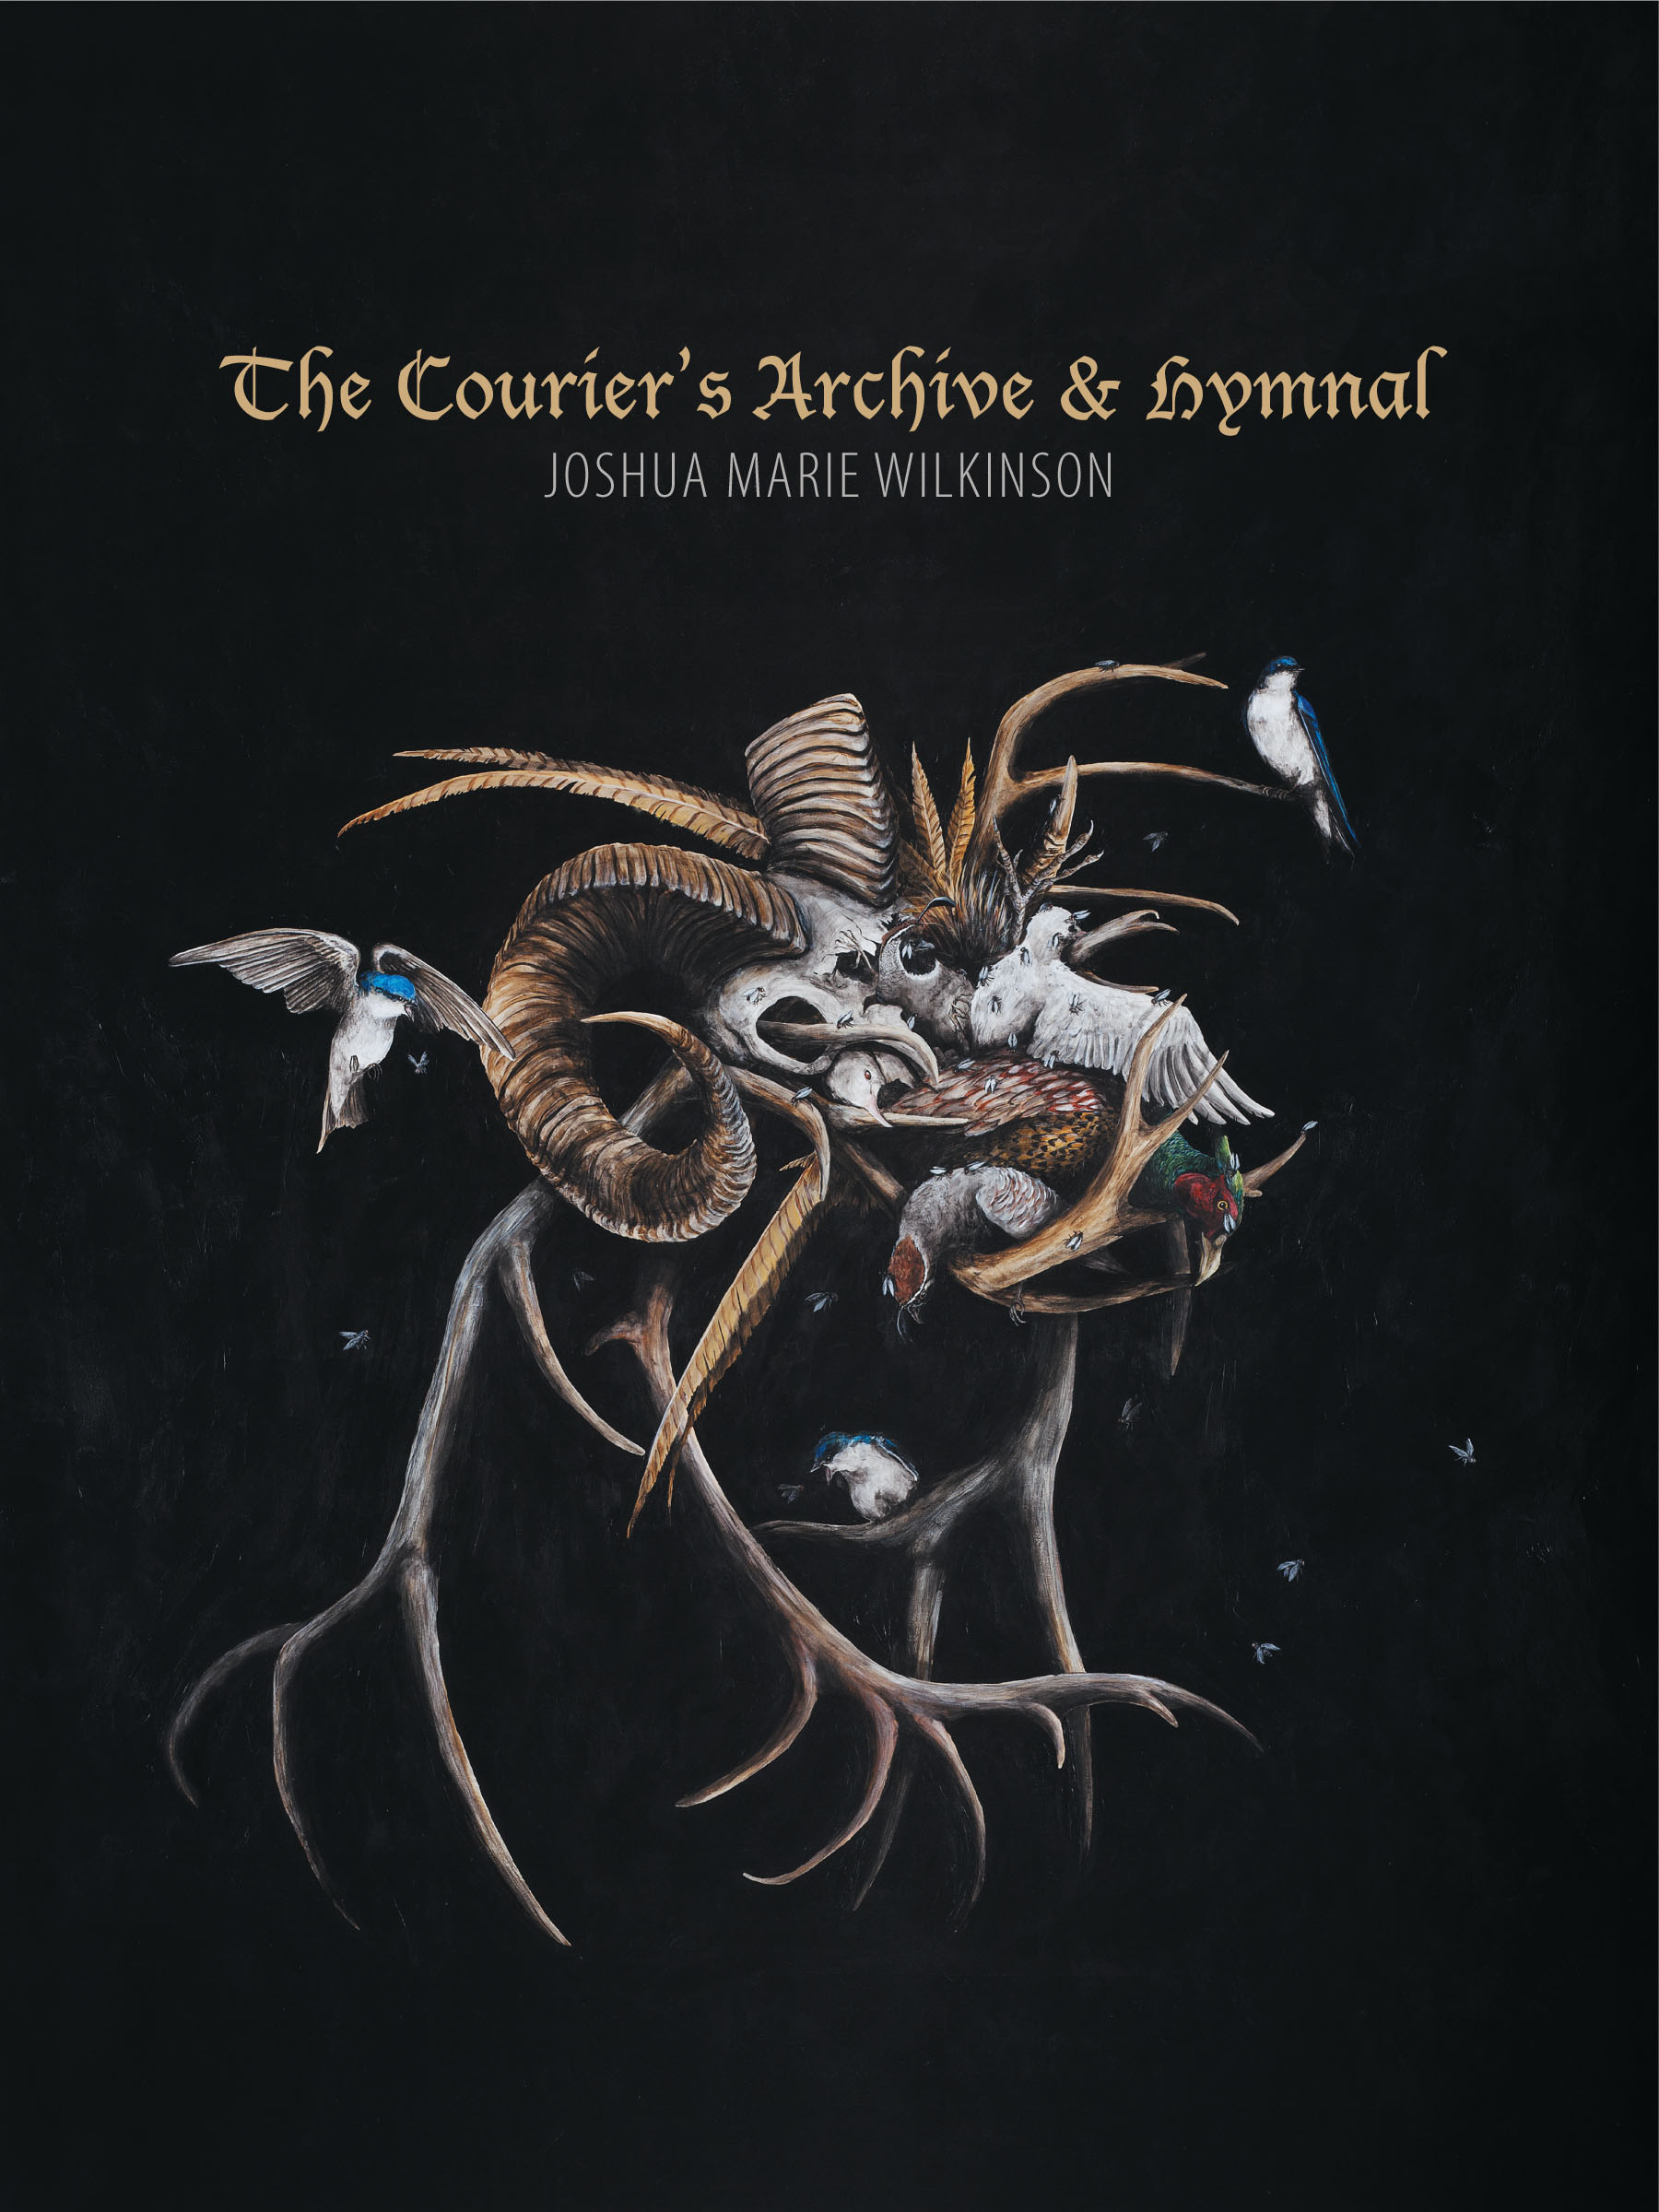 The Courier's Archive & Hymnal by Joshua Marie Wilkinson